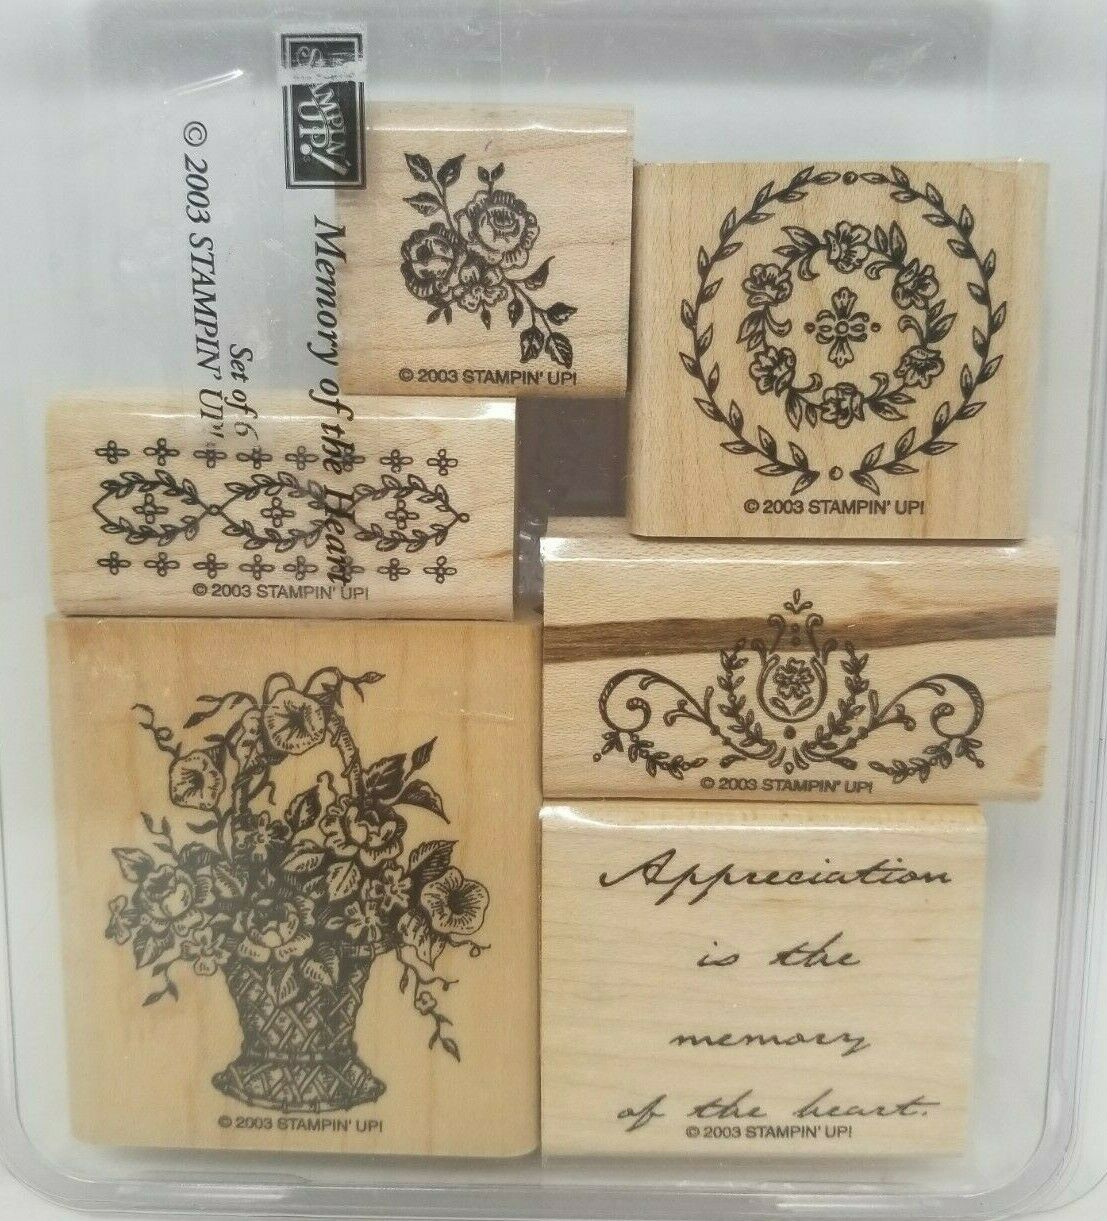 Stampin Up Memory Of The Heart Wood Mount Rubber Stamps Roses Flowers Thanks - $11.99